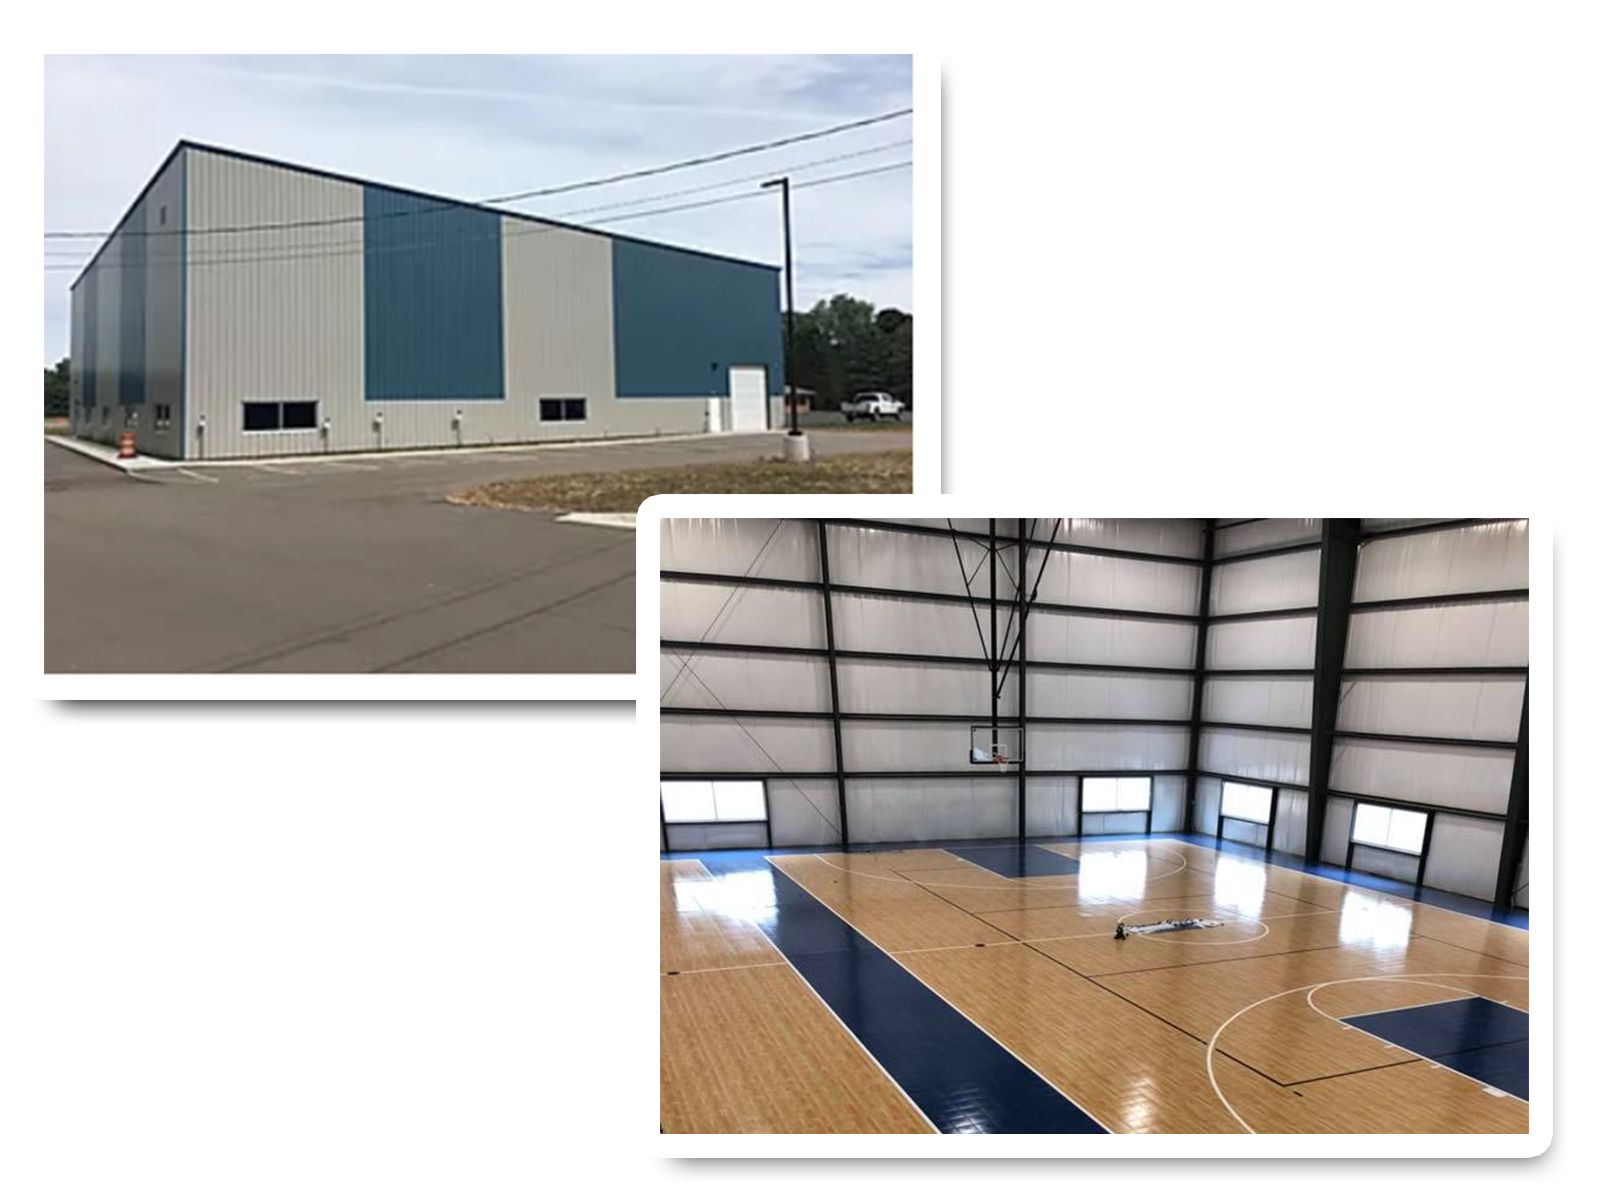 Performance FieldHouse Fulfilling the Need for Indoor Practice Facilities